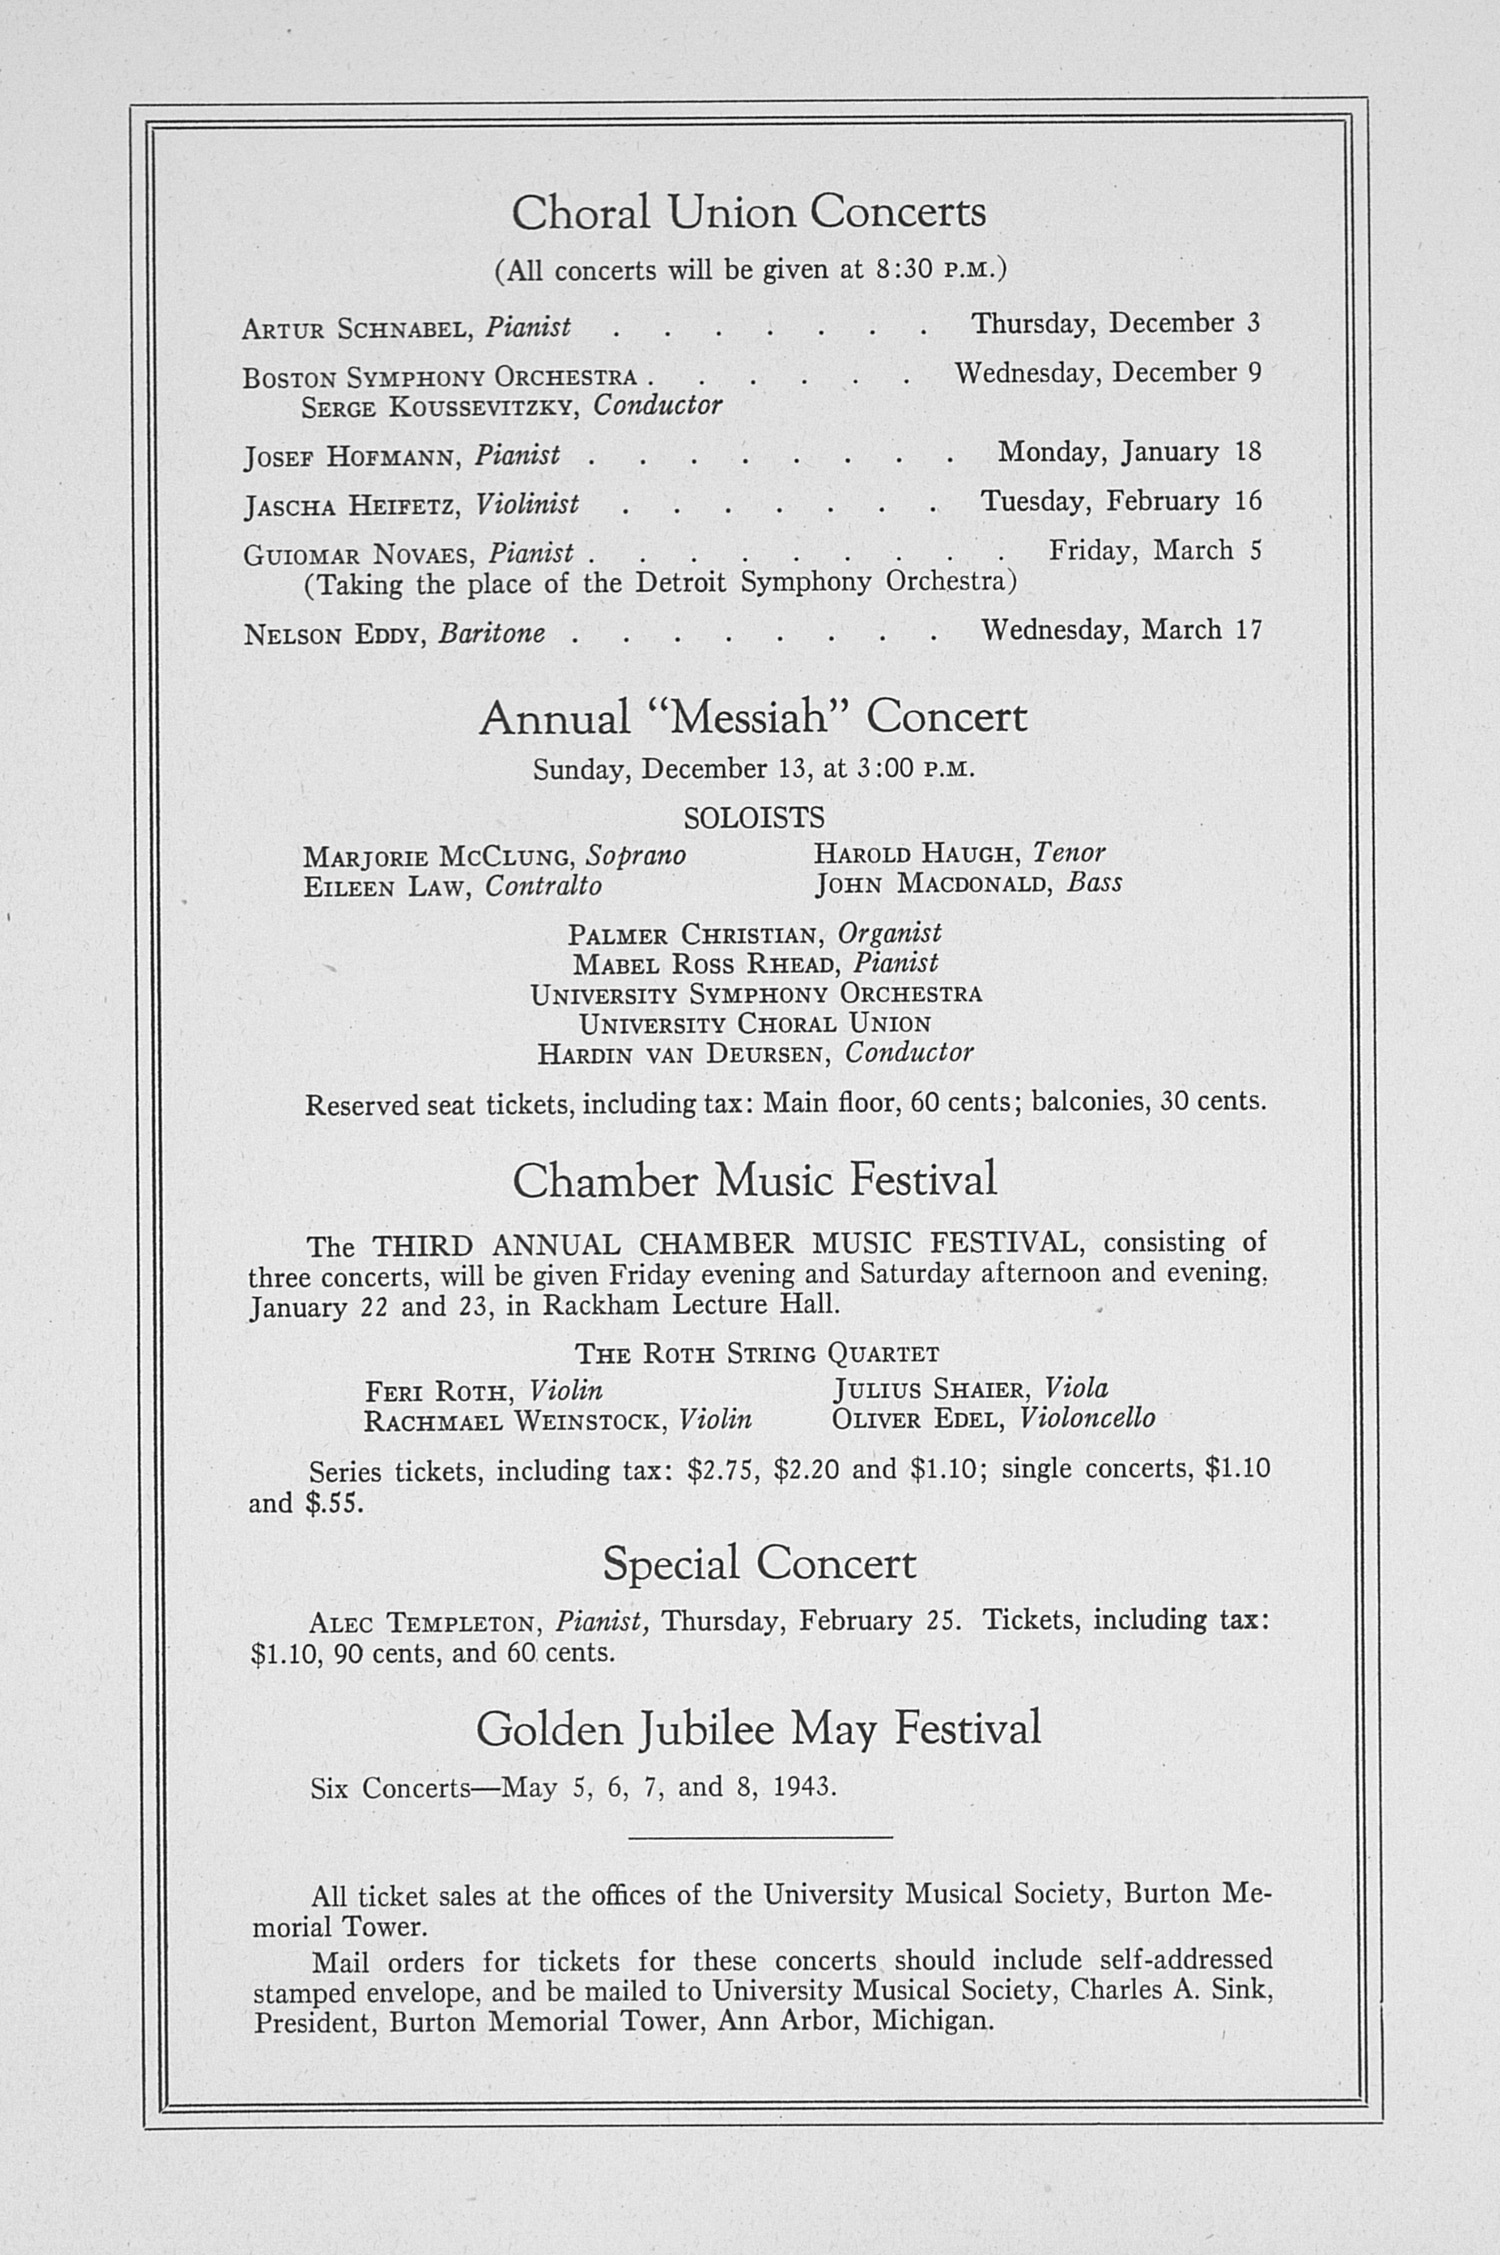 UMS Concert Program, November 19, 1942: Sixty-fourth Annual Choral Union Concert Series -- Albert Spalding image